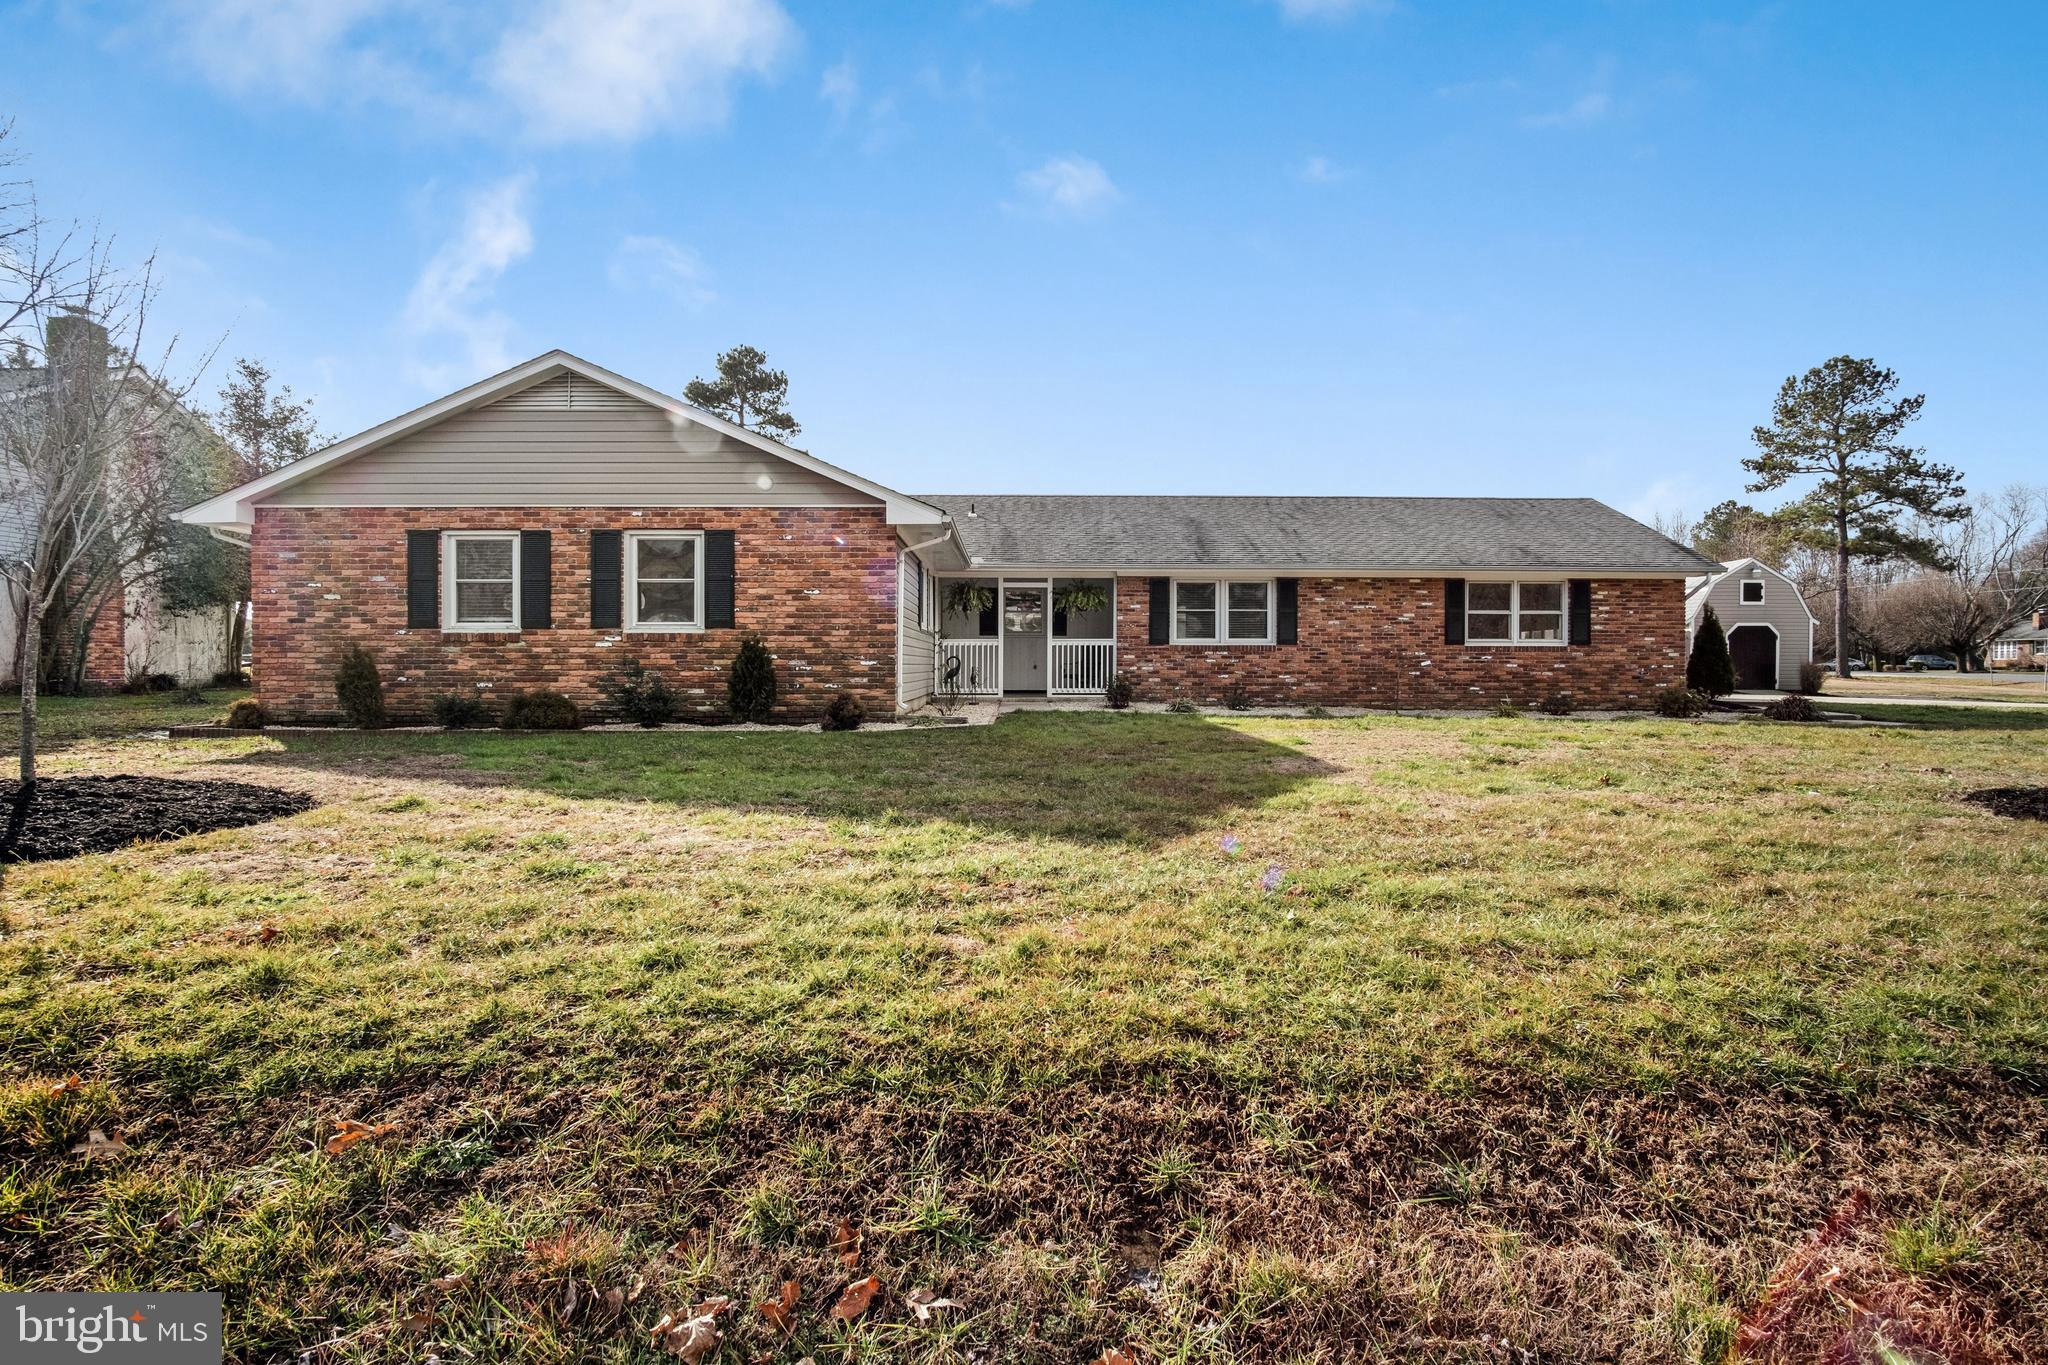 Wonderful 3 Bedroom 2 Full Bath rancher located in the quiet friendly Bennet Point Community!  Large